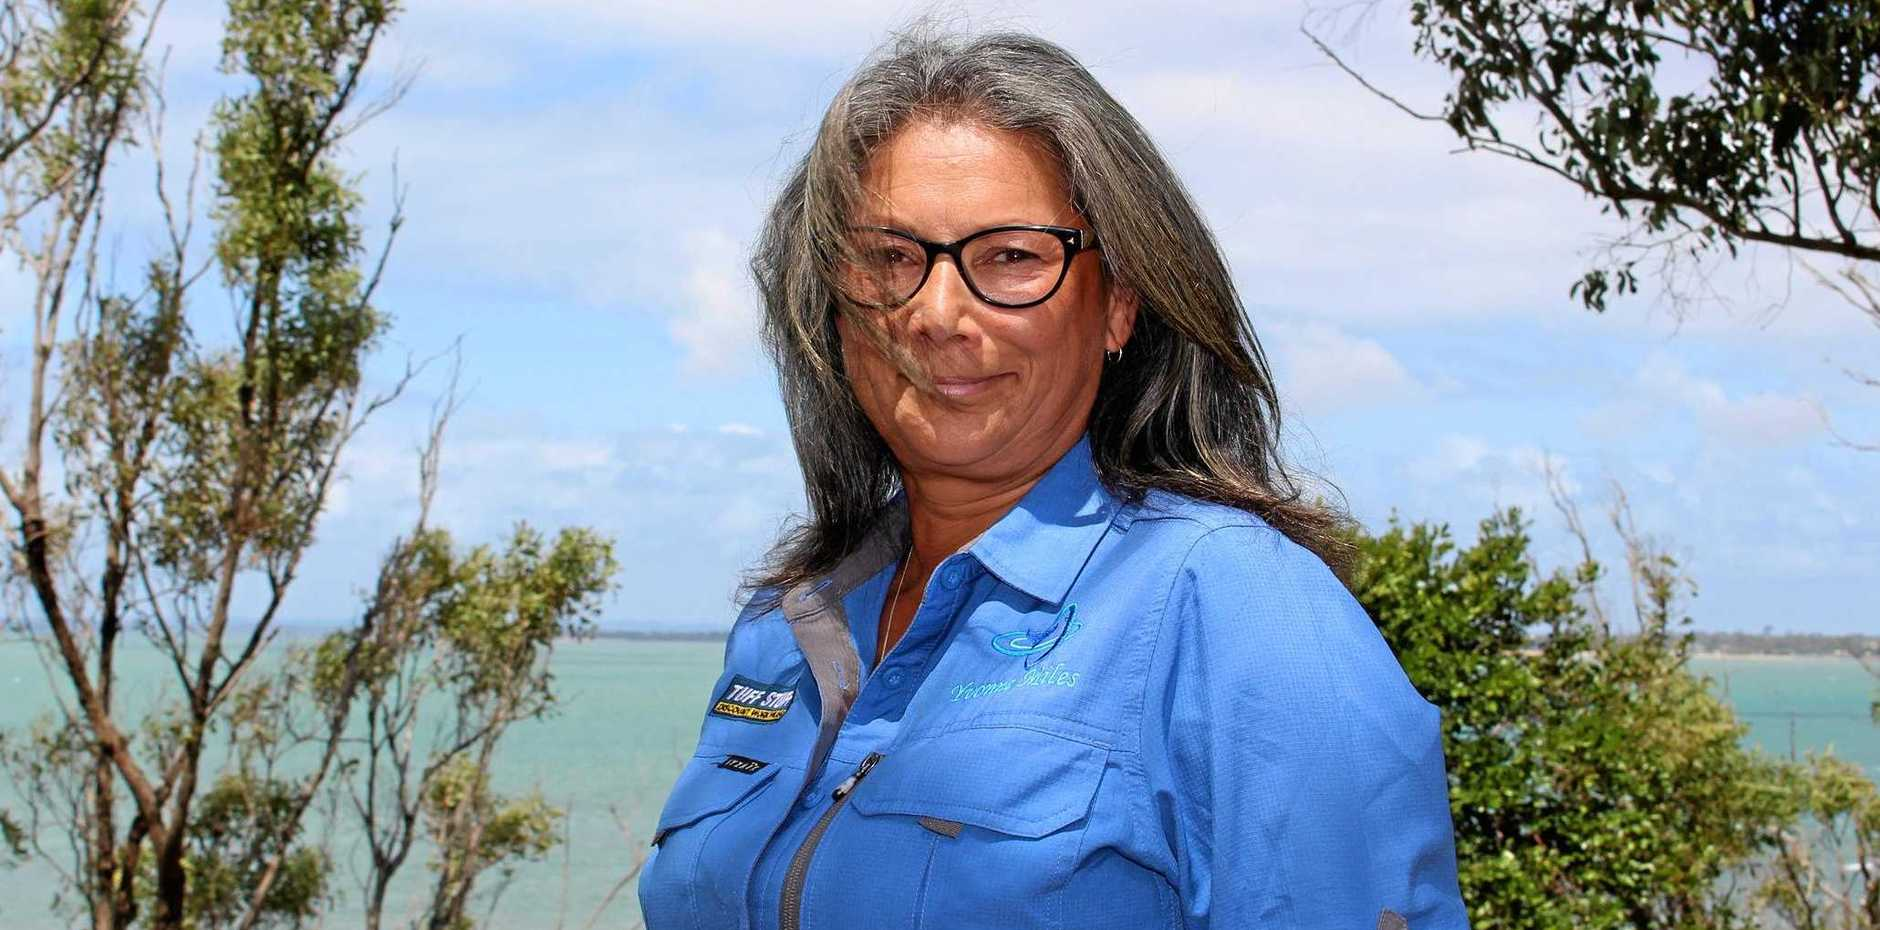 RESCUE GOALS: Hervey Bay marine biologist Yvonne Miles wants to see whale rescue equipment in the city.